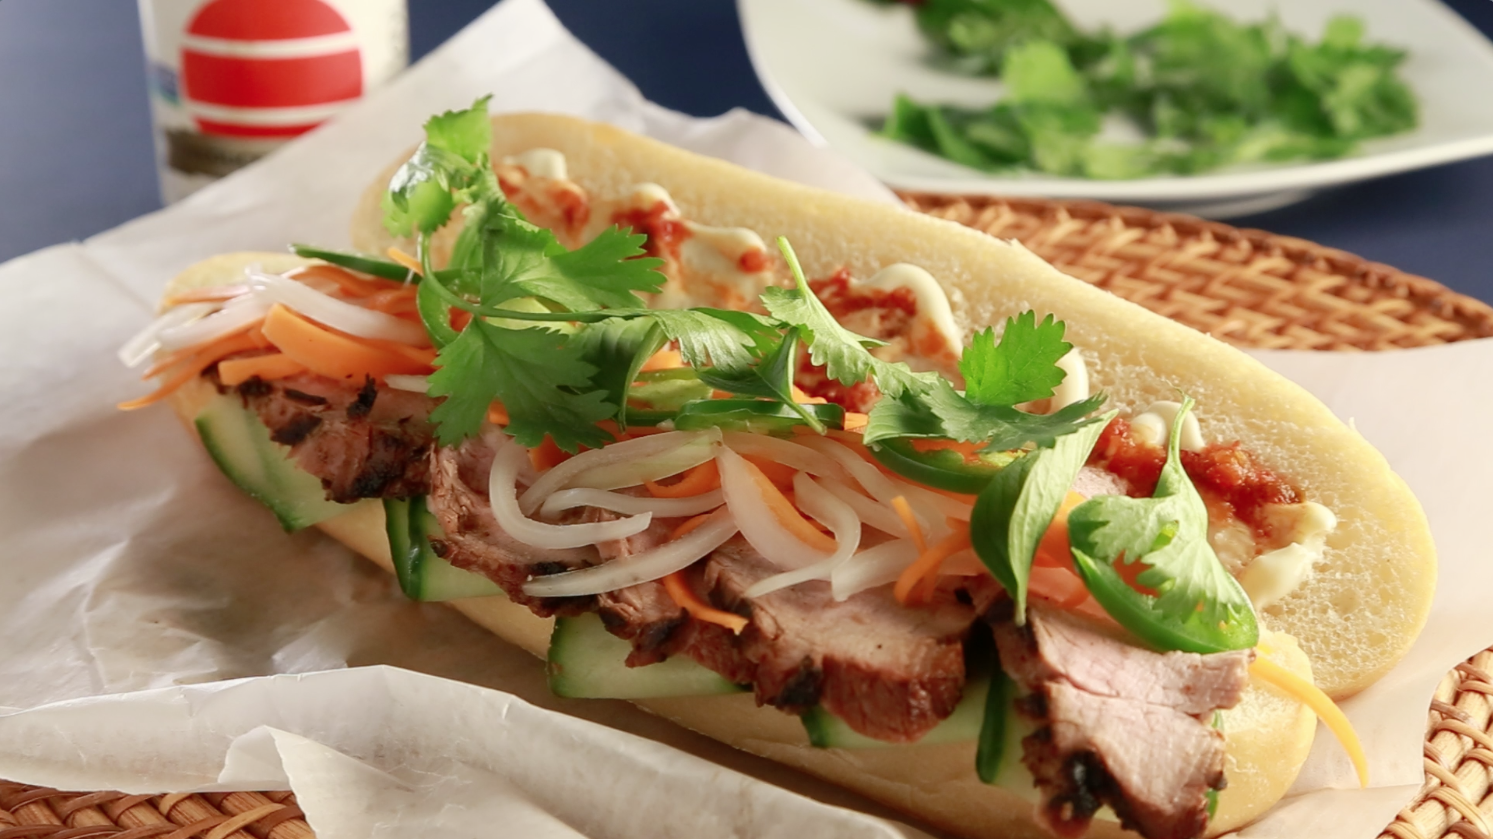 This spicy-fresh Vietnamese sandwich layers thin slices of tender marinated grilled pork tenderloin with crunchy pickled veggies, fresh-cut jalapeno, thin ribbons of cucumber and spicy chile mayo on a French baguette. Banh Mi perfection crafted in the Food Channel's very own kitchen!